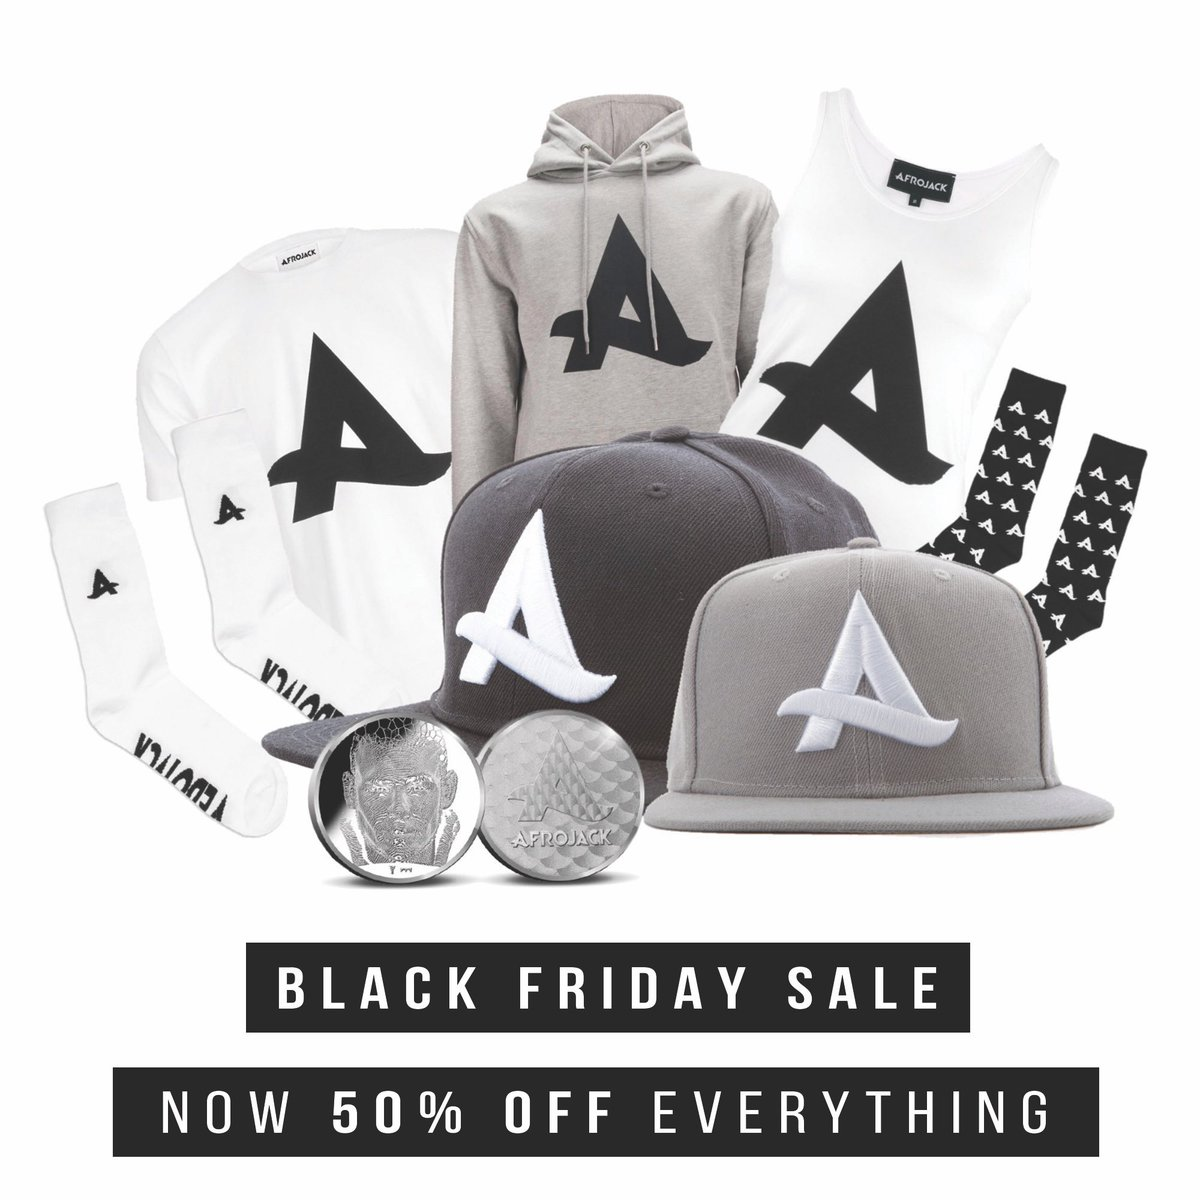 this black friday sale is going crazy!!! buy your merch now with 50% OFF!!!